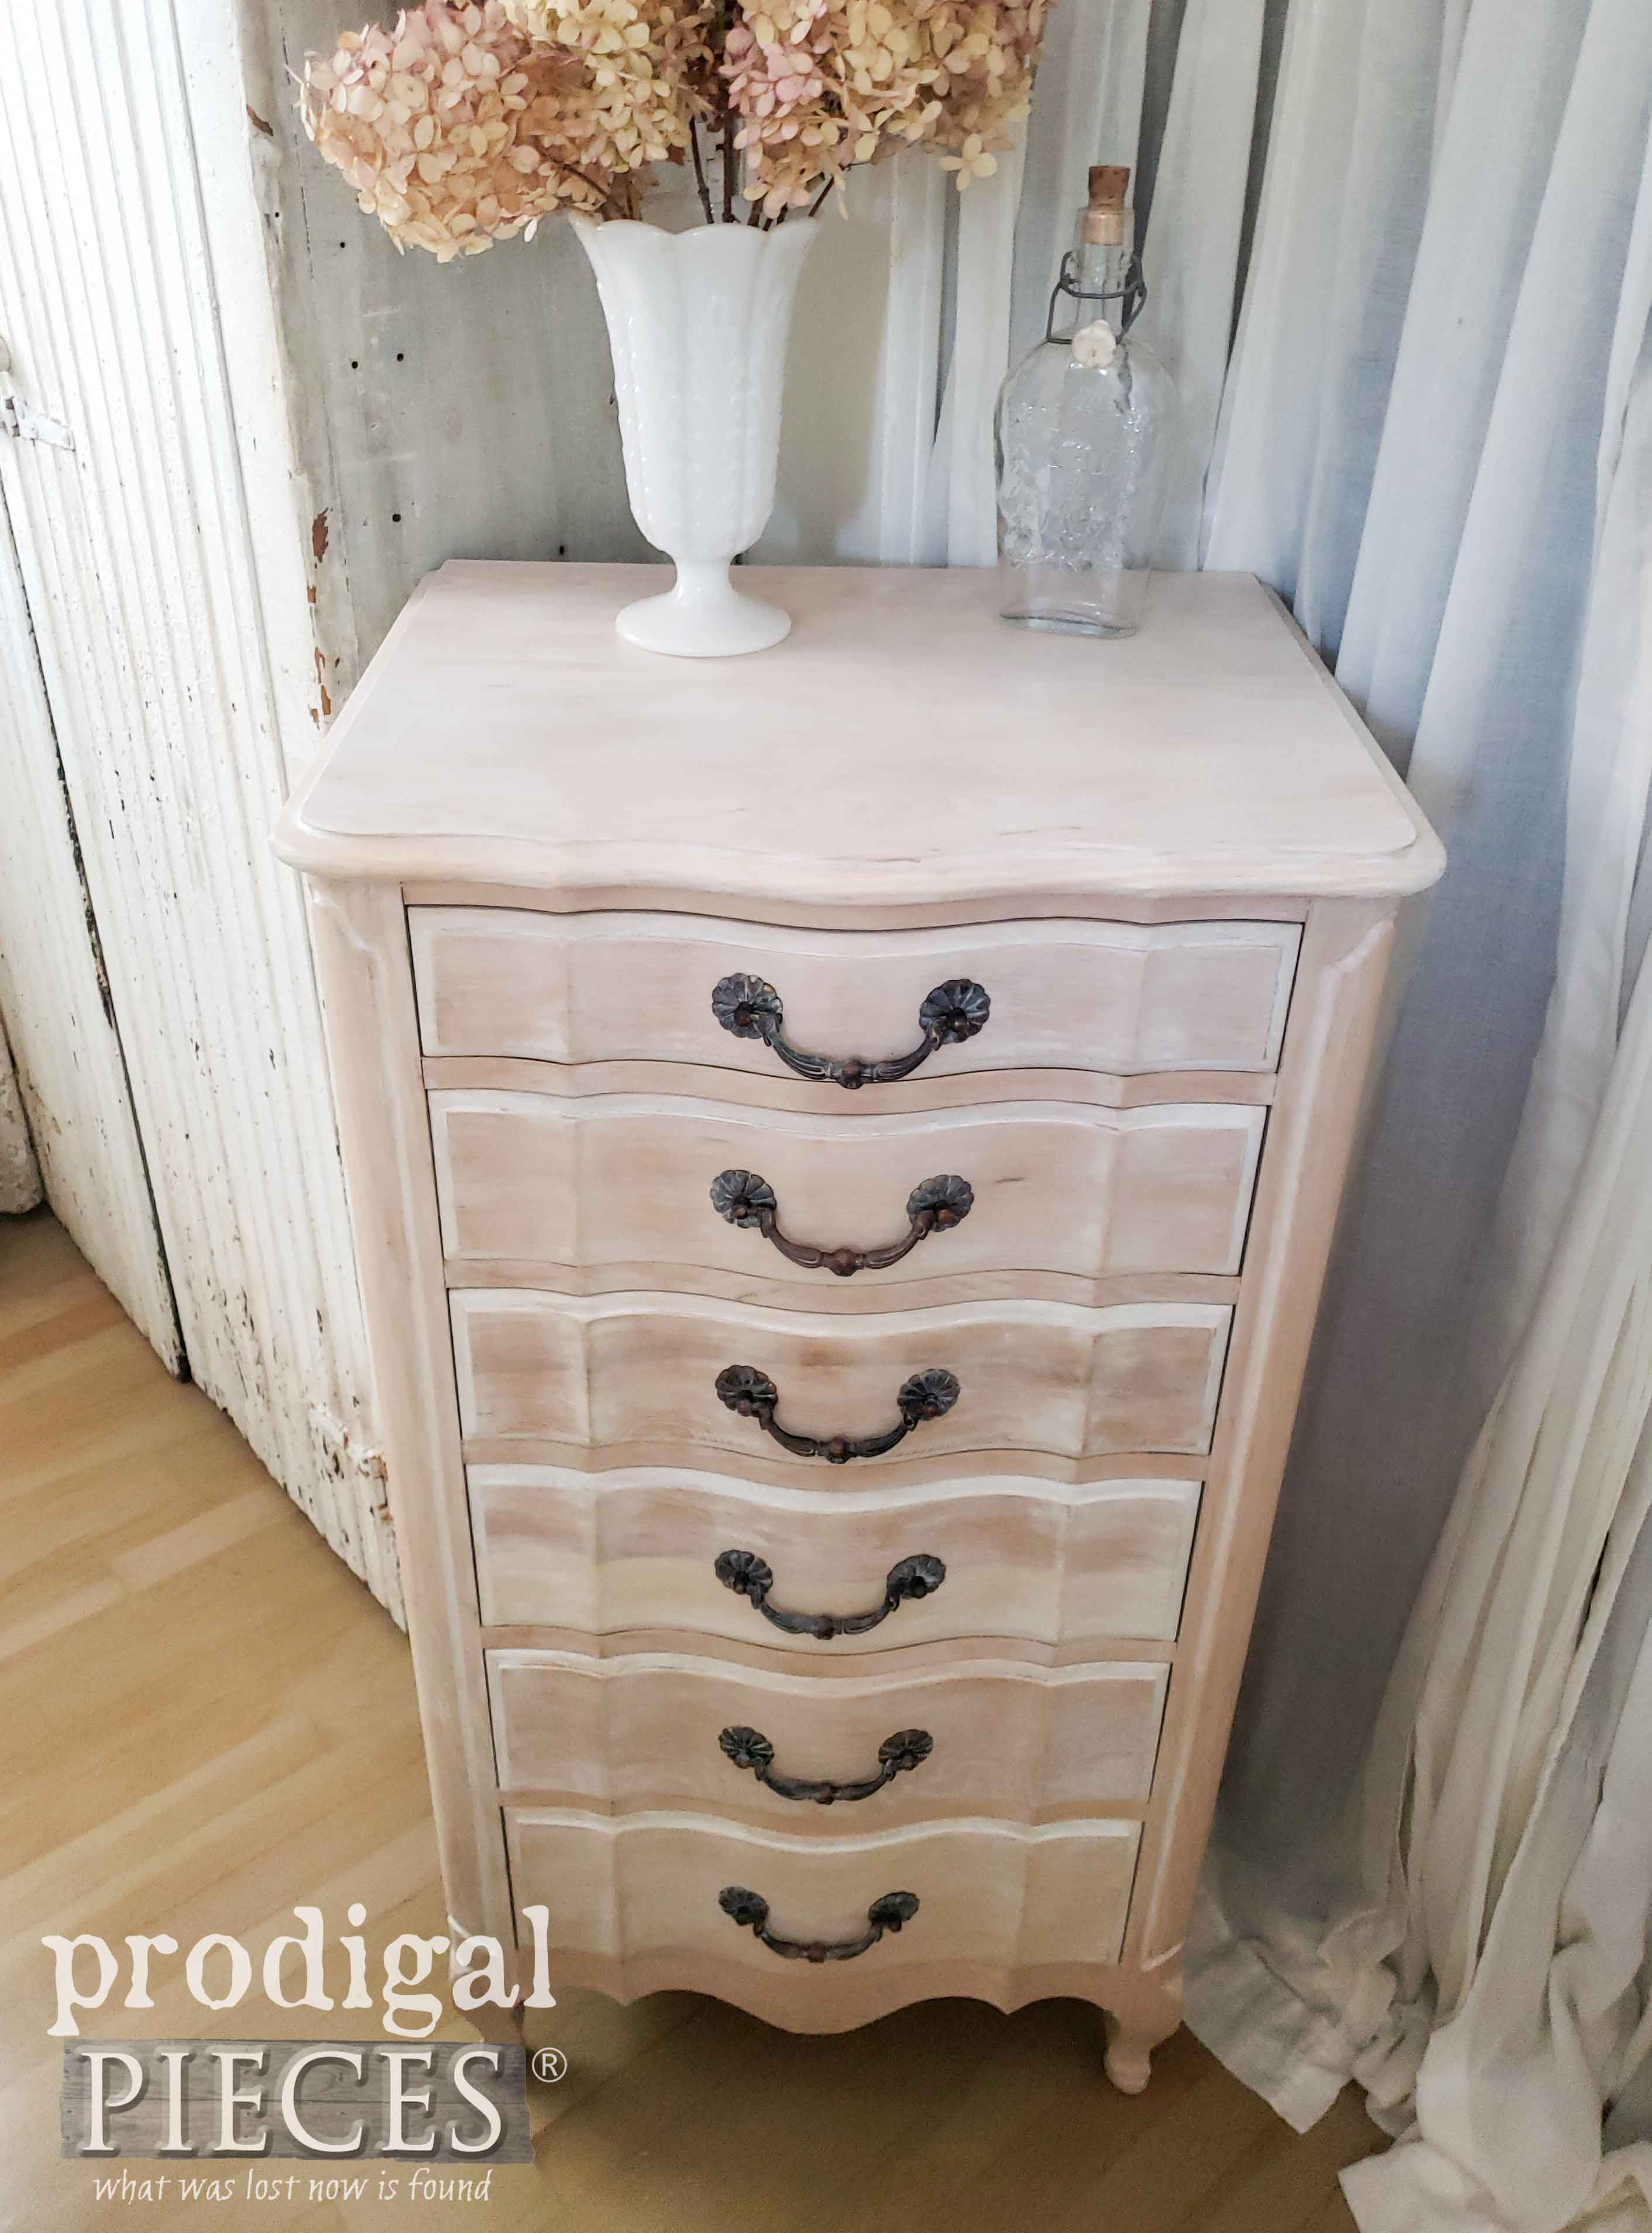 Limewashed Vintage Lingerie Chest by Larissa of Prodigal Pieces | prodigalpieces.com #prodigalpieces #furniture #diy #home #homedecor #farmhouse #french